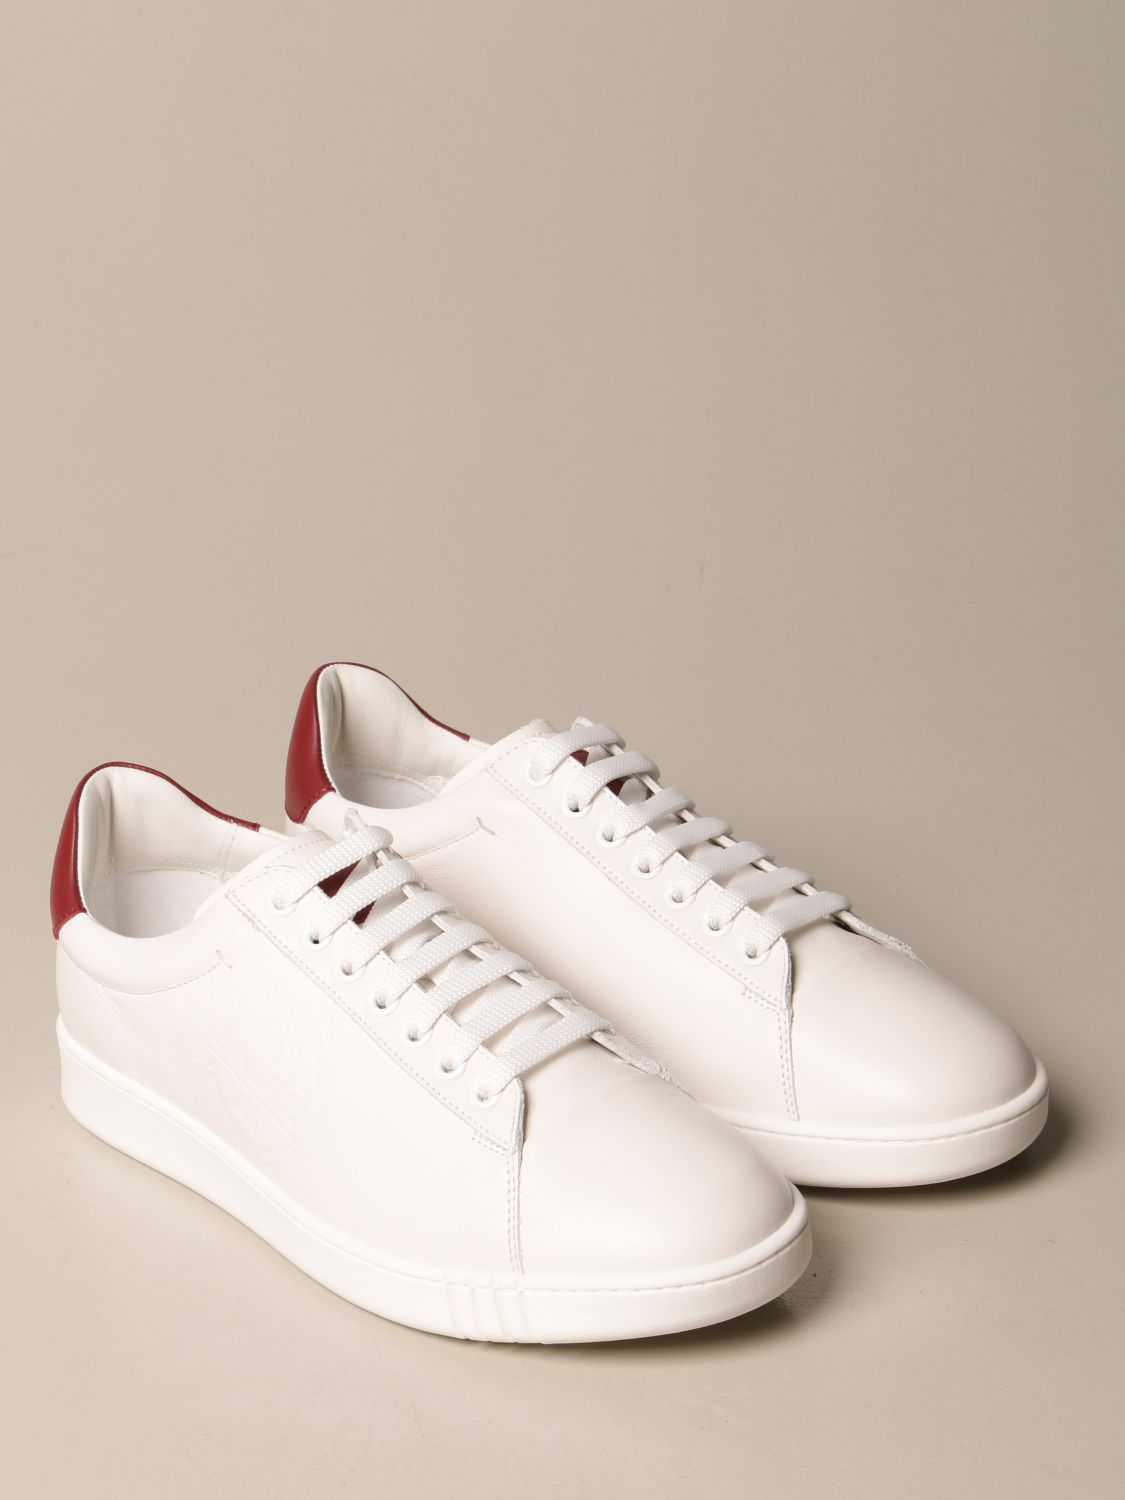 Baskets Bally: Chaussures homme Bally blanc 2